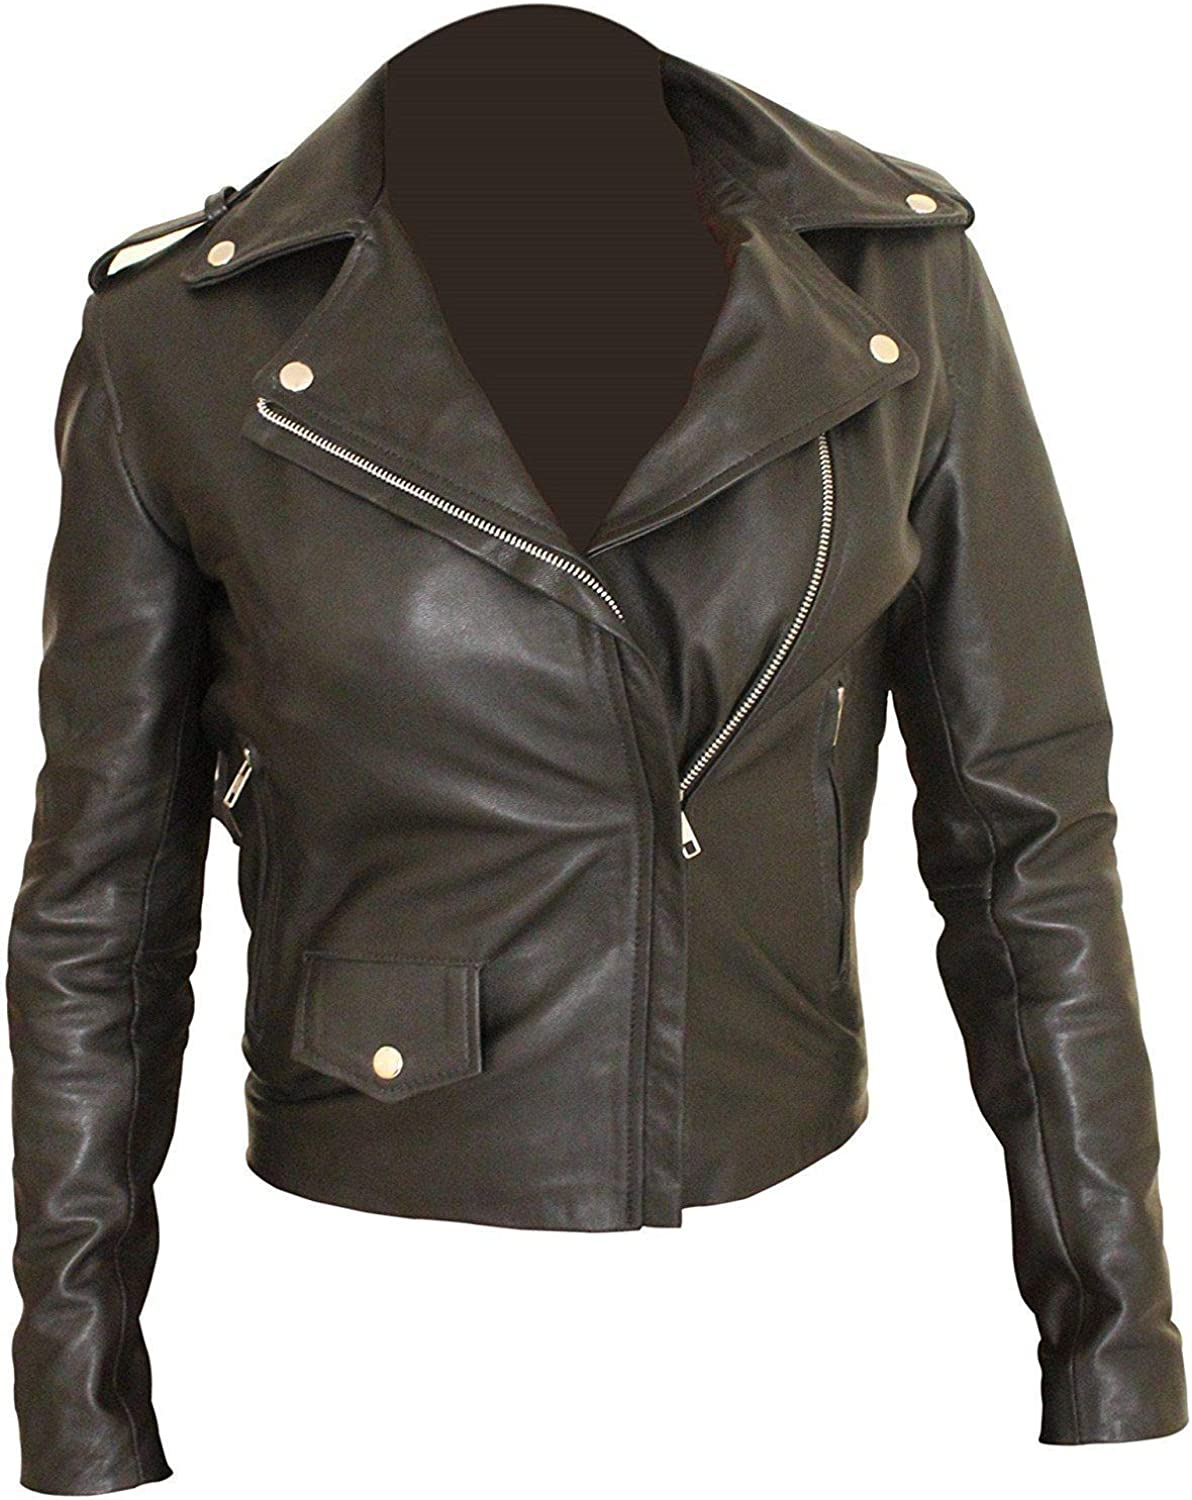 Leather Icon Ritter Slim Jacket Same day shipping OFFer Cosplay Fit Biker